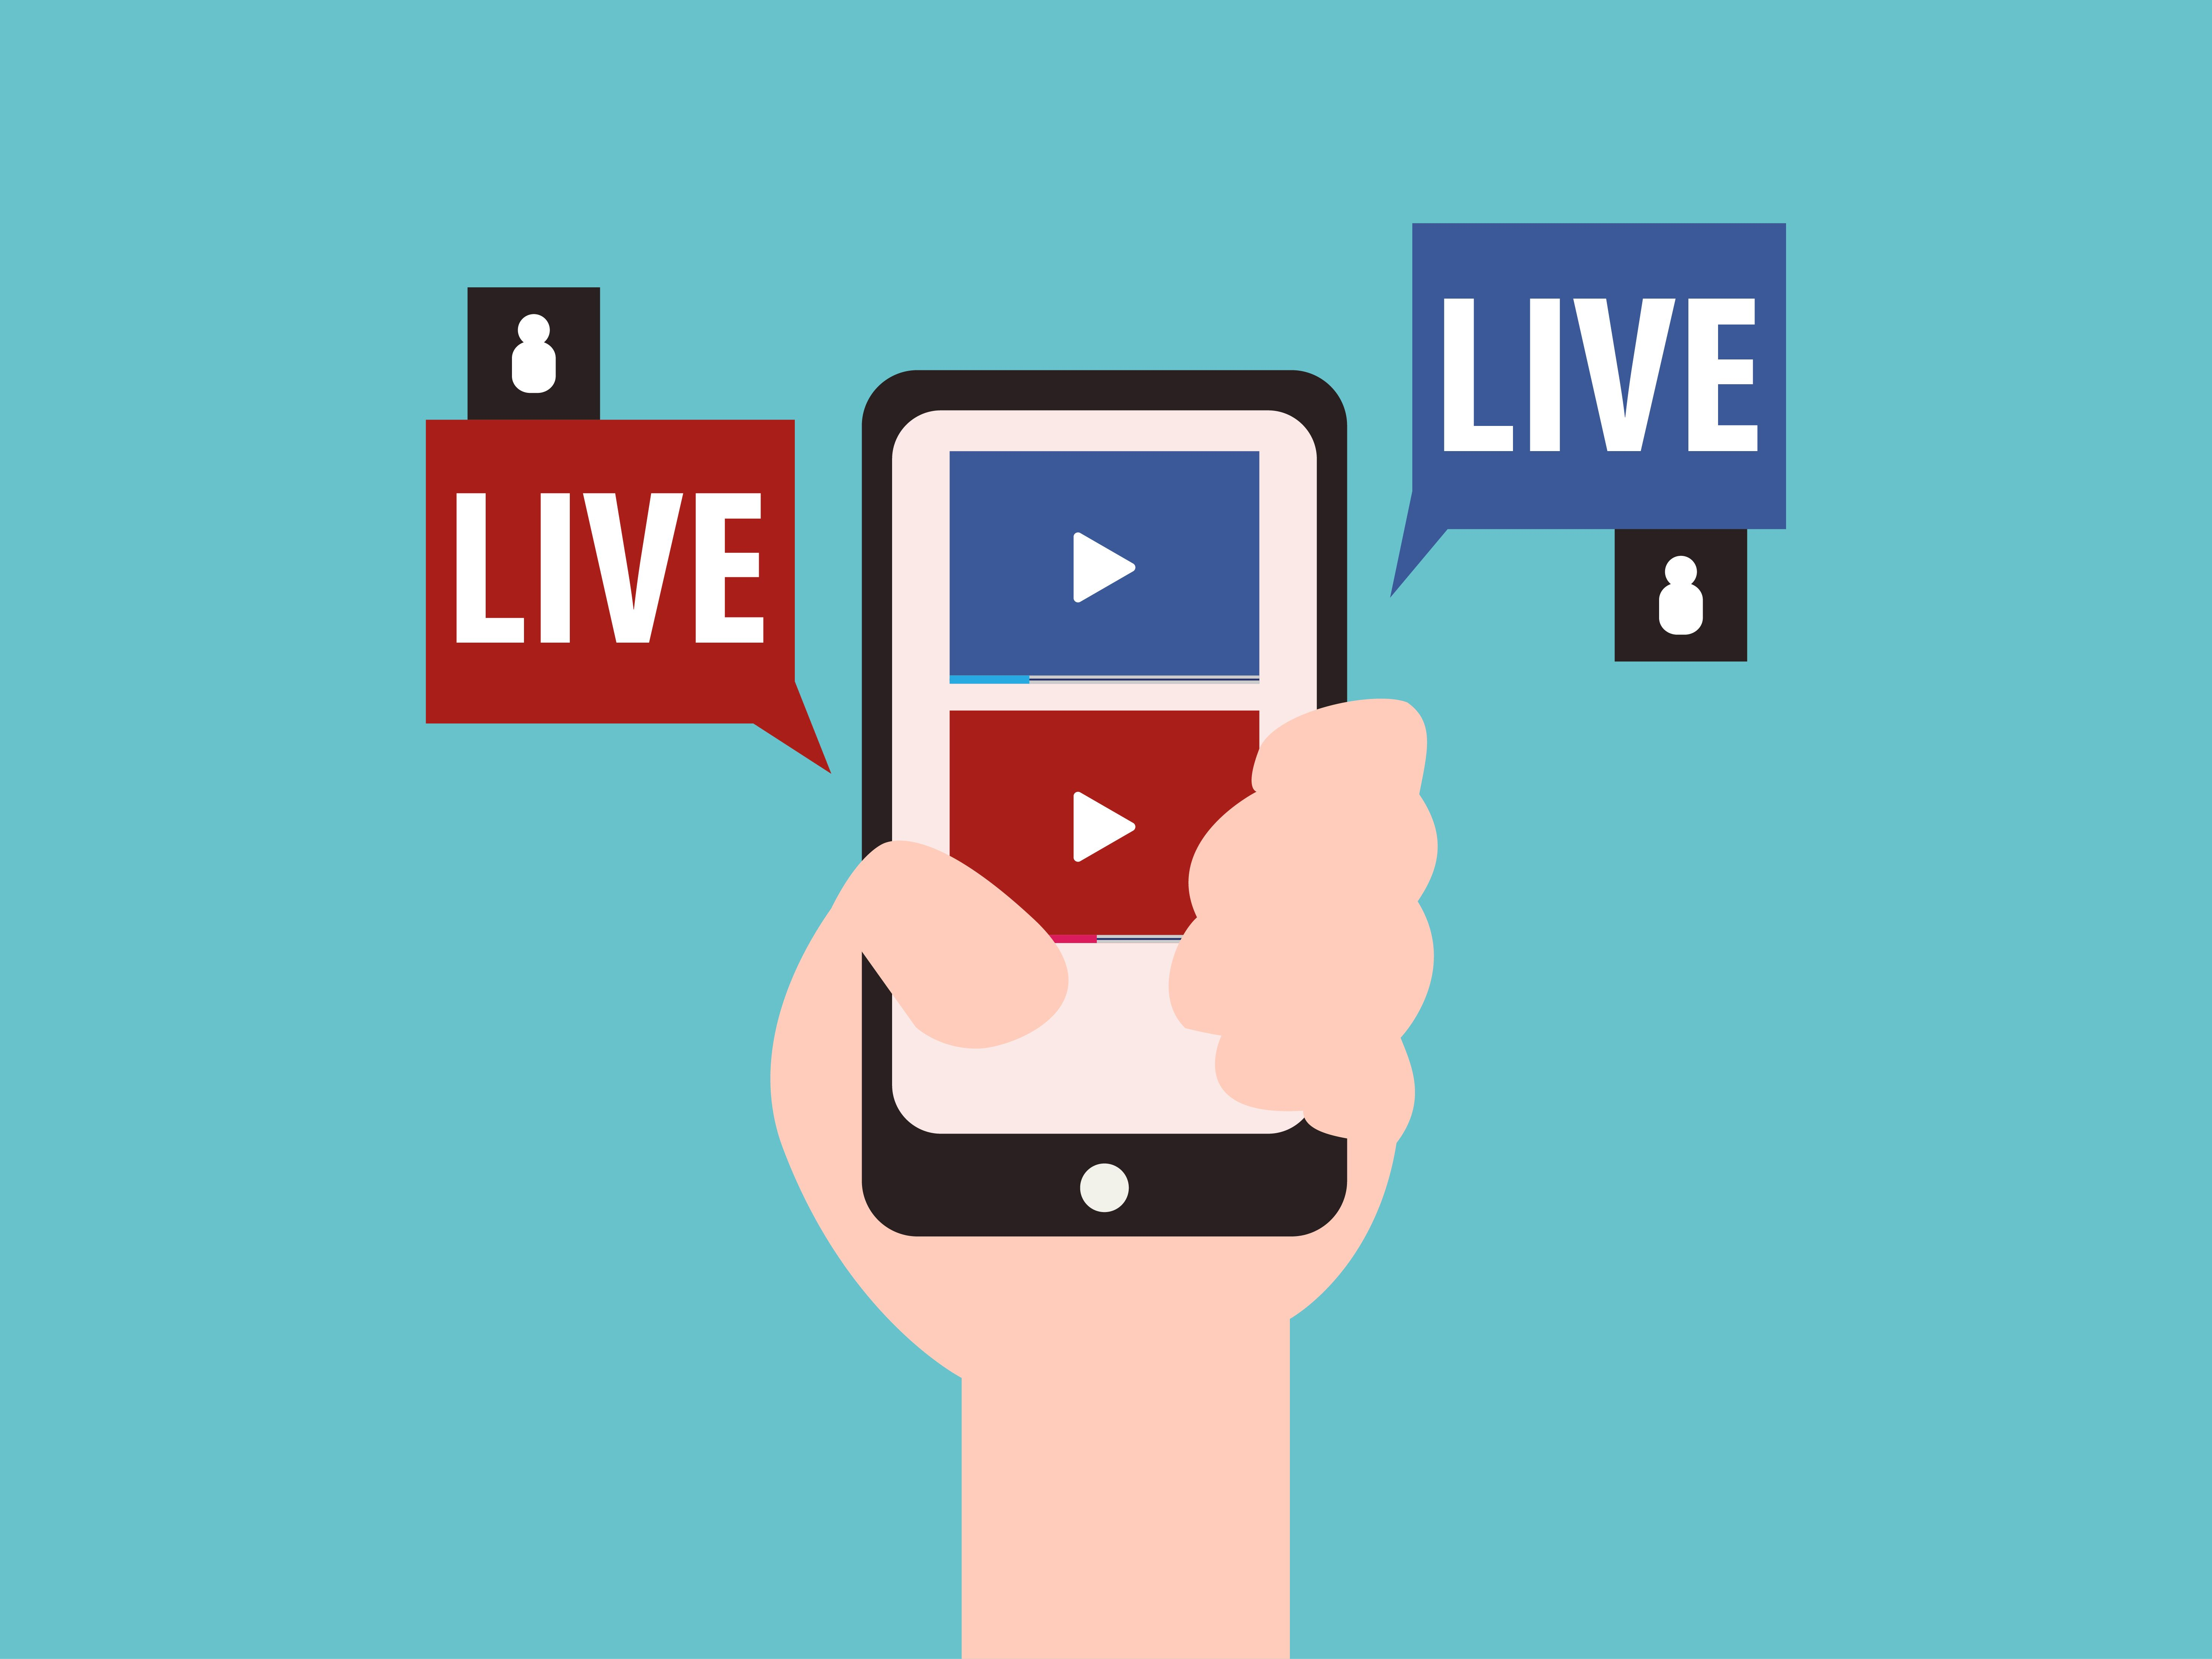 5 Simple Techniques to Get More Facebook Live Viewers